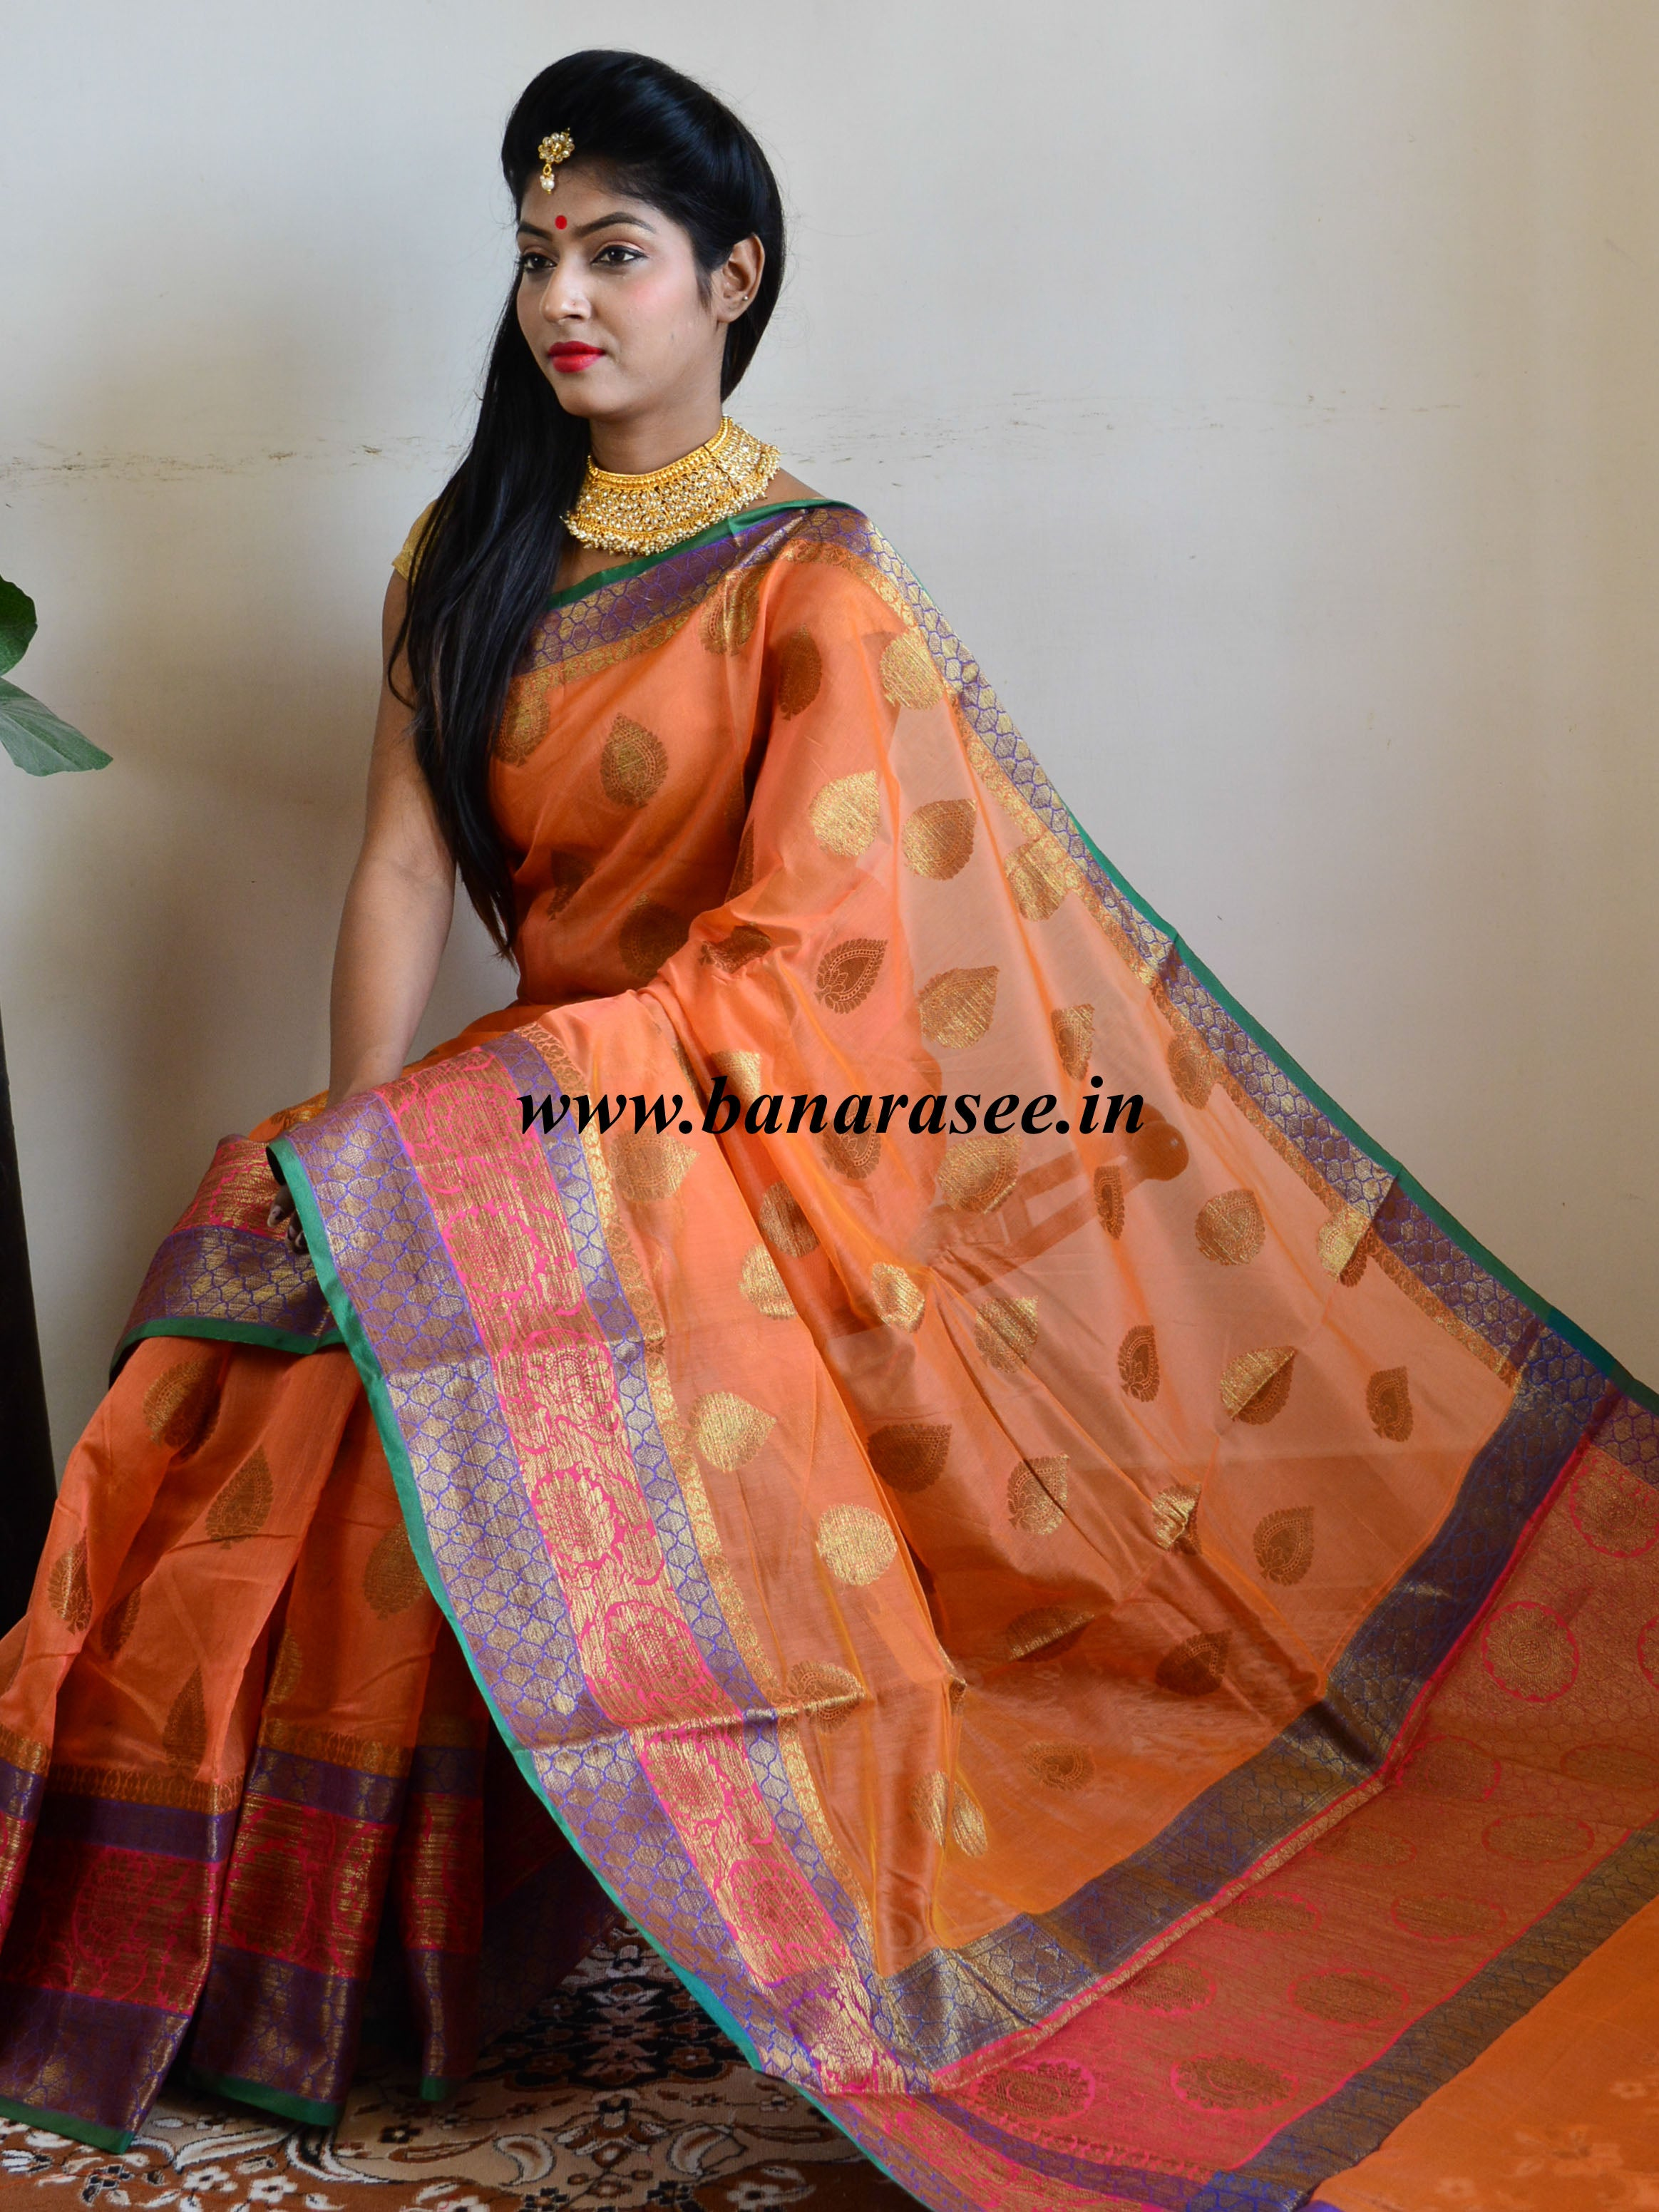 eb9e9548224ce5 Banarasee Handloom Cotton Silk Saree With Antique Zari Buta   Floral B